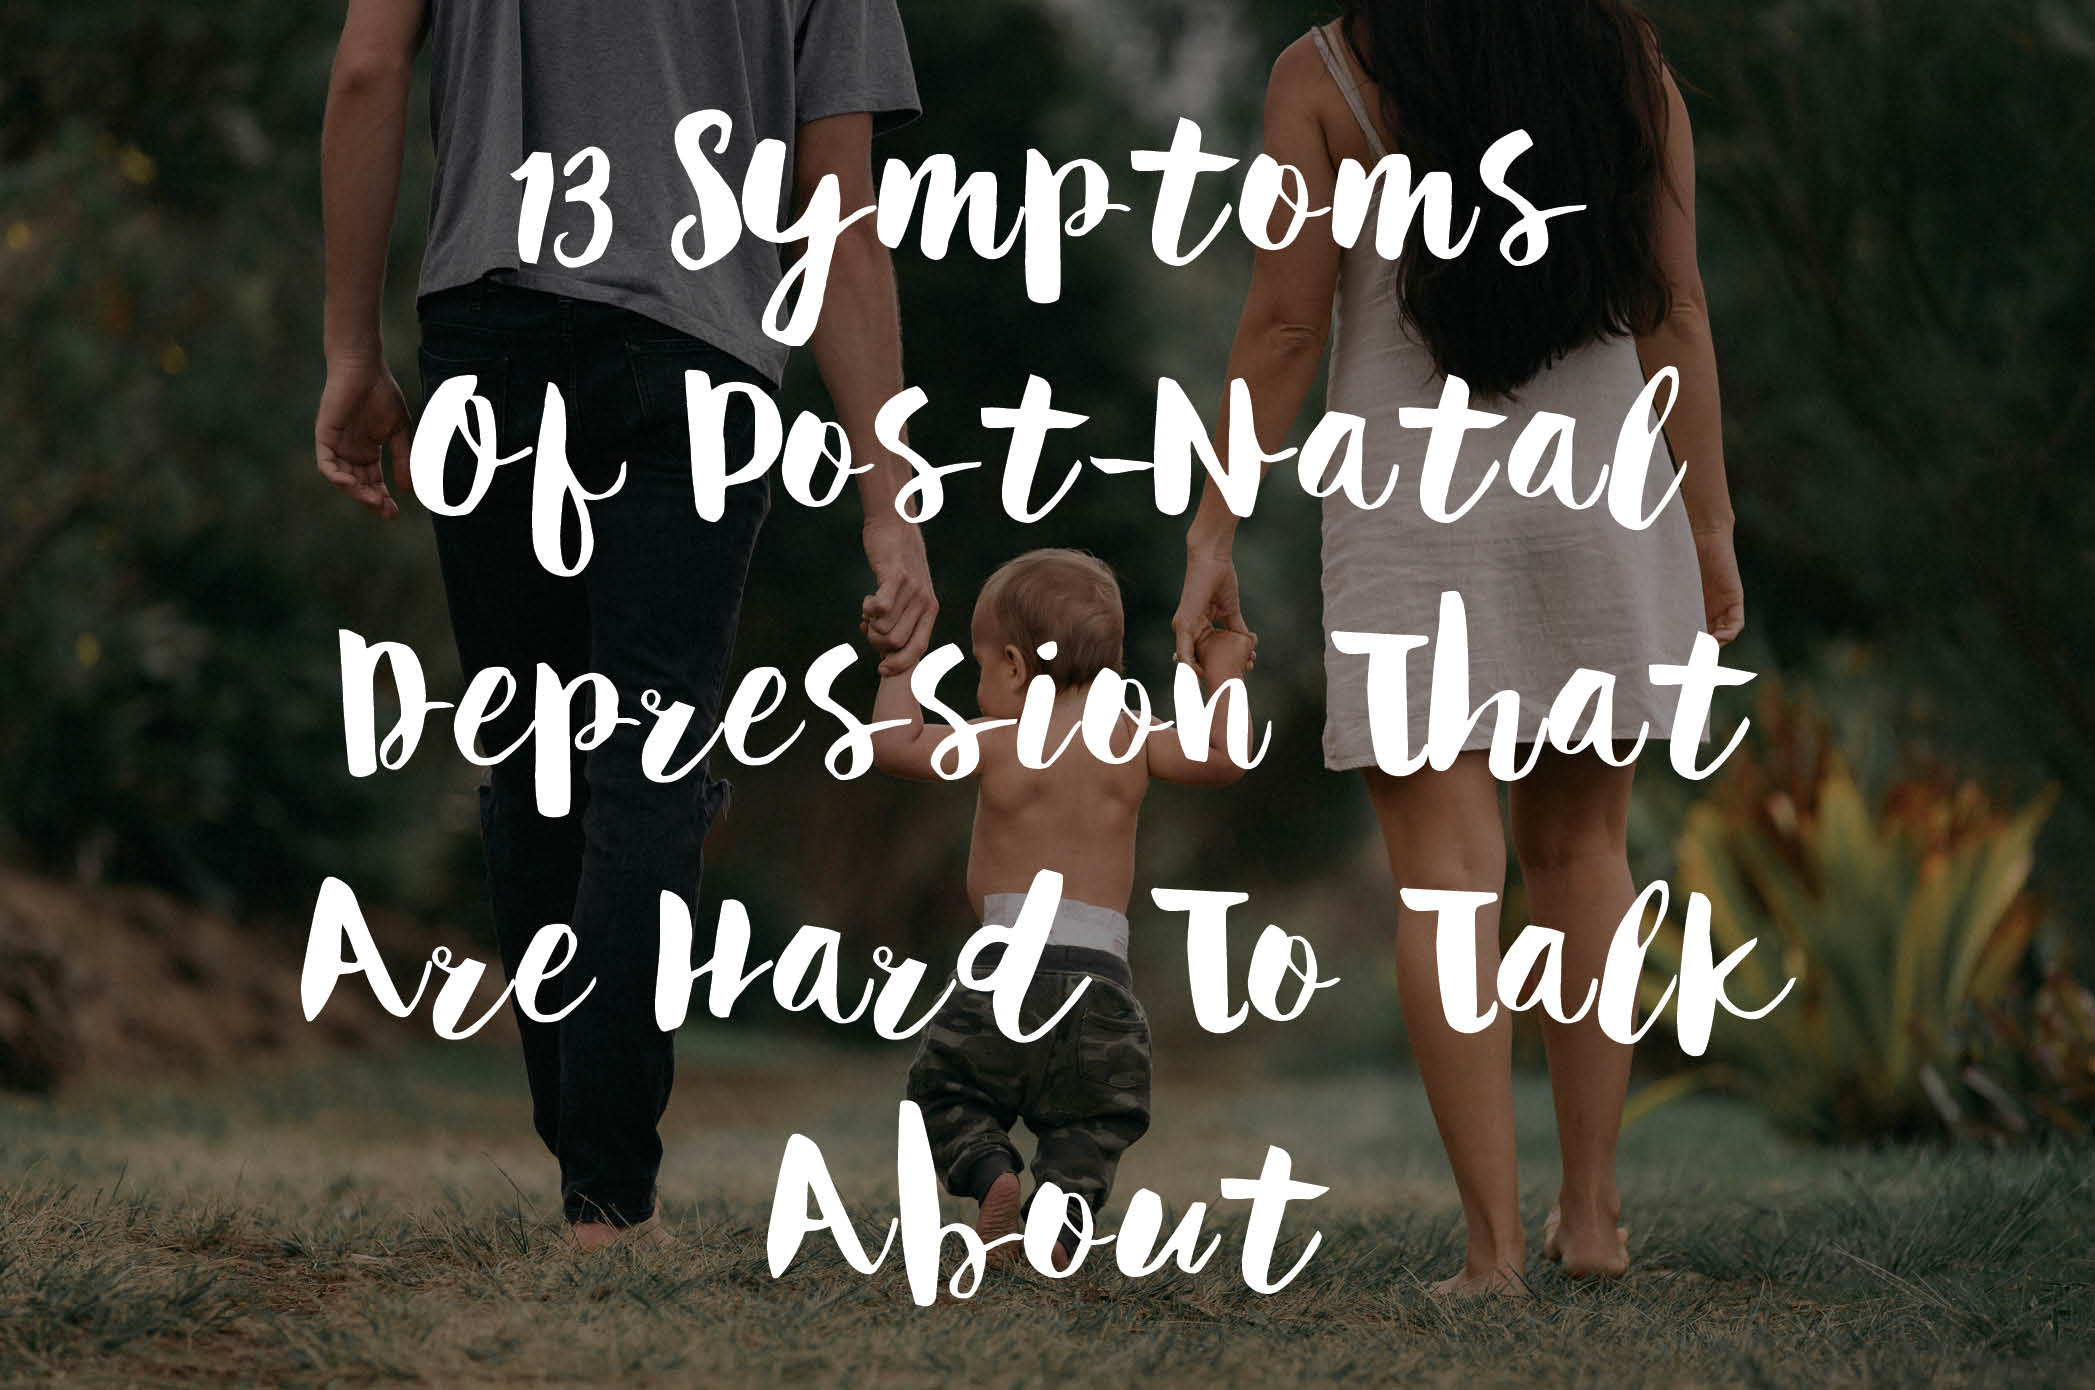 13 Symptoms Of Post-Natal Depression That Are Hard To Talk About